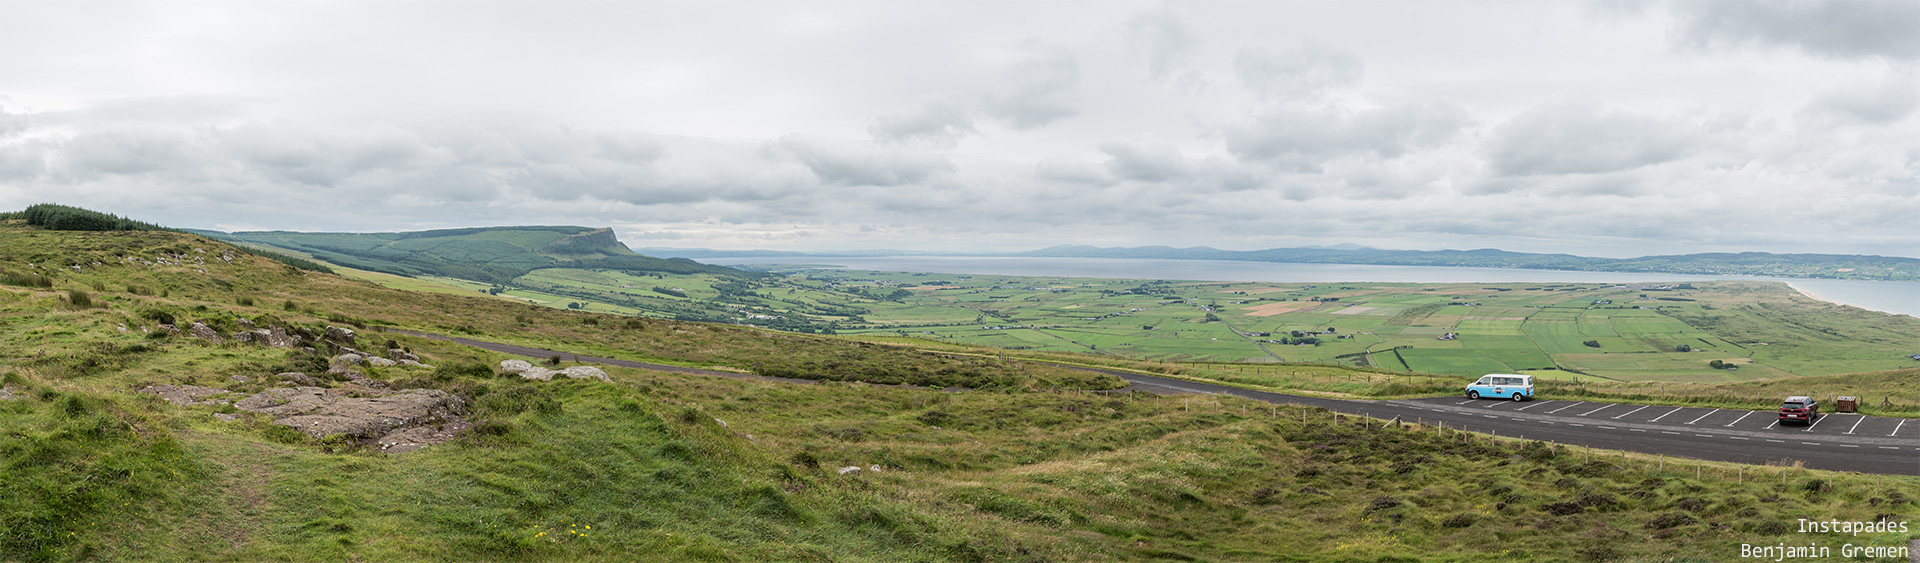 j5-gortmore-view-point-7583